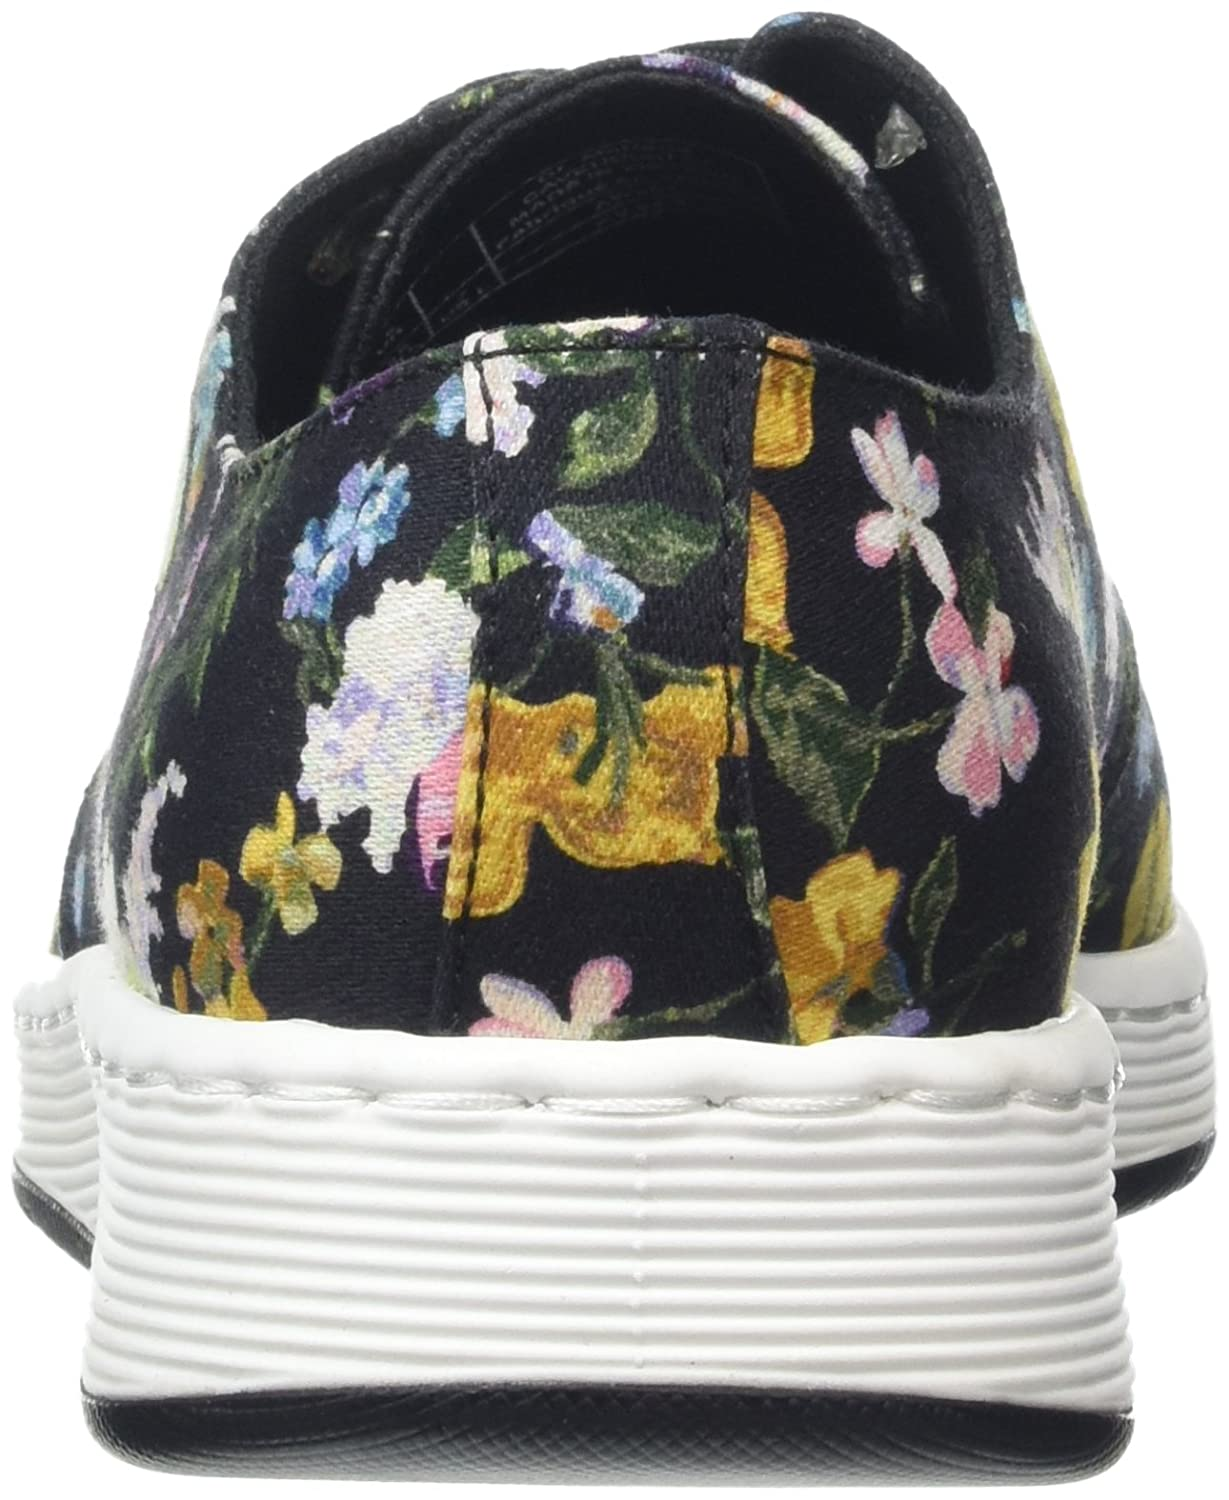 Dr. Martens Women's Darcy Floral Cavendish 3 Eye Canvas, Leather Sneakers B01NANVHO5 4 M UK / 6 B(M) US|Black Darcy Floral Fine Canvas